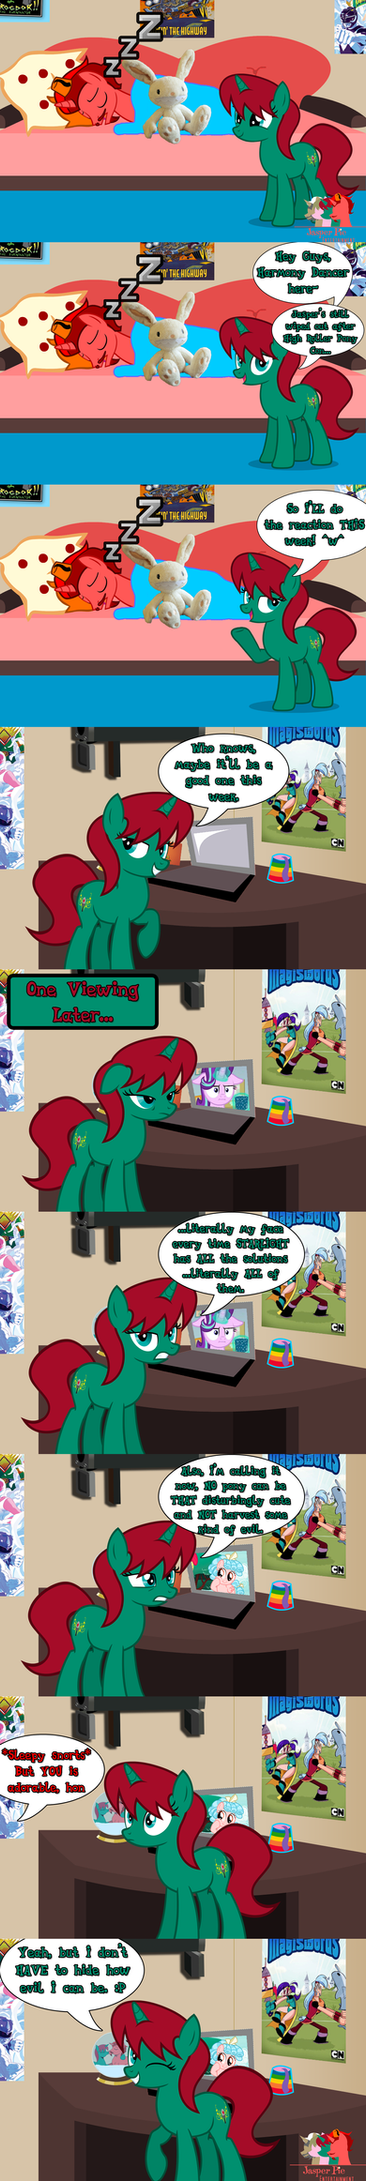 Harmony Reacts to Marks for Effort (SPOILERS!!!) by JasperPie